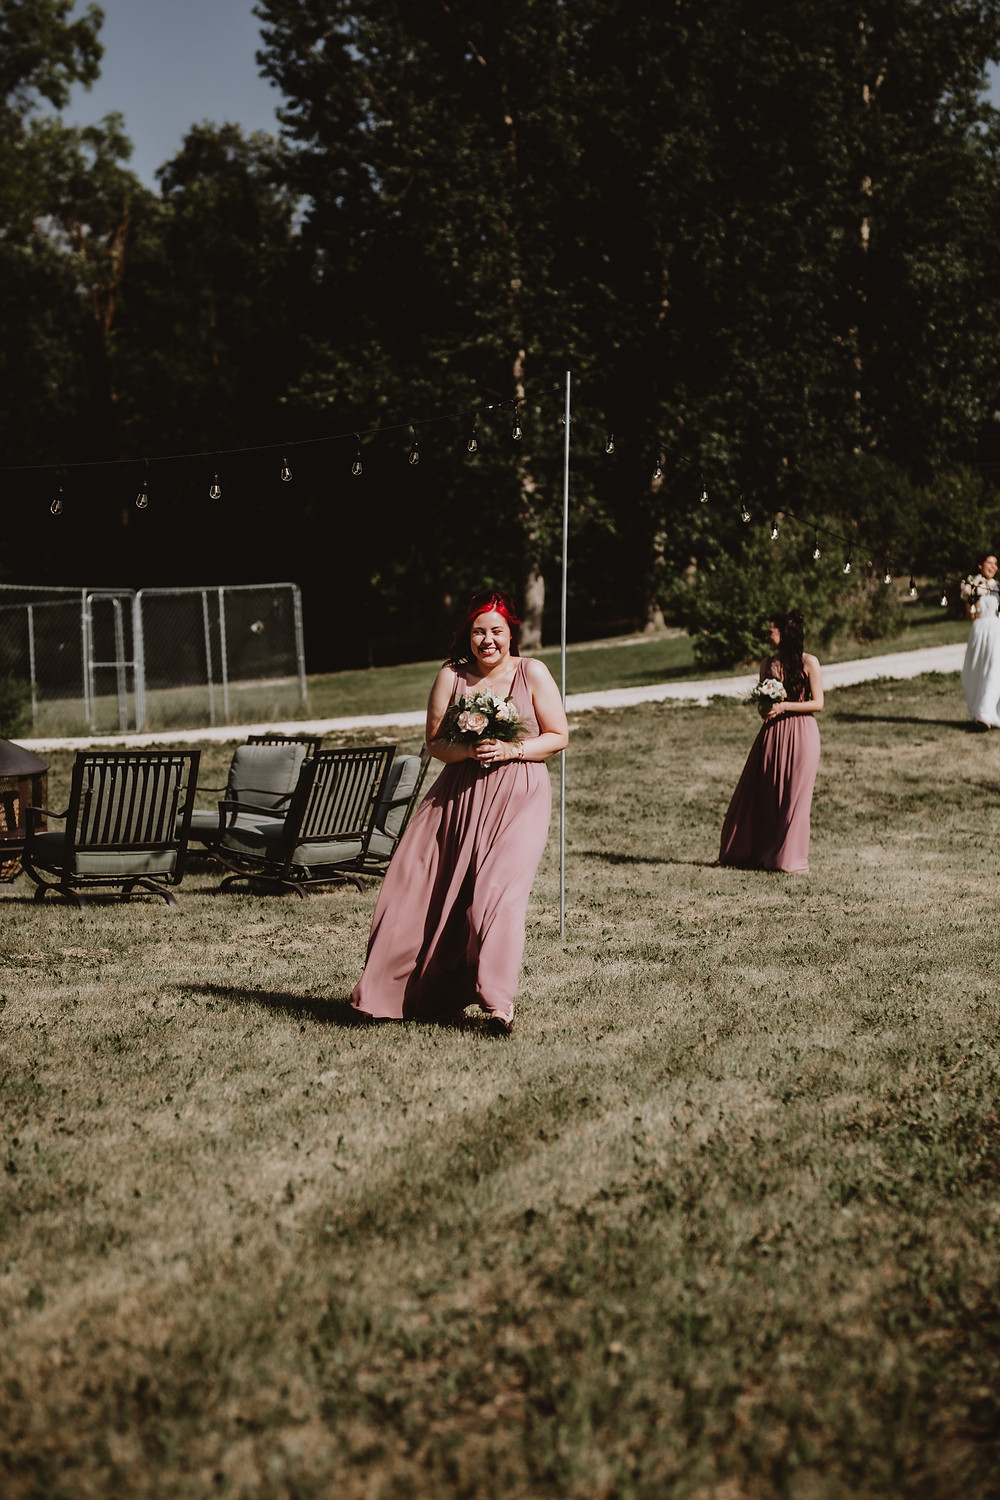 Smiling bridesmaid walking down the aisle during backyard wedding.